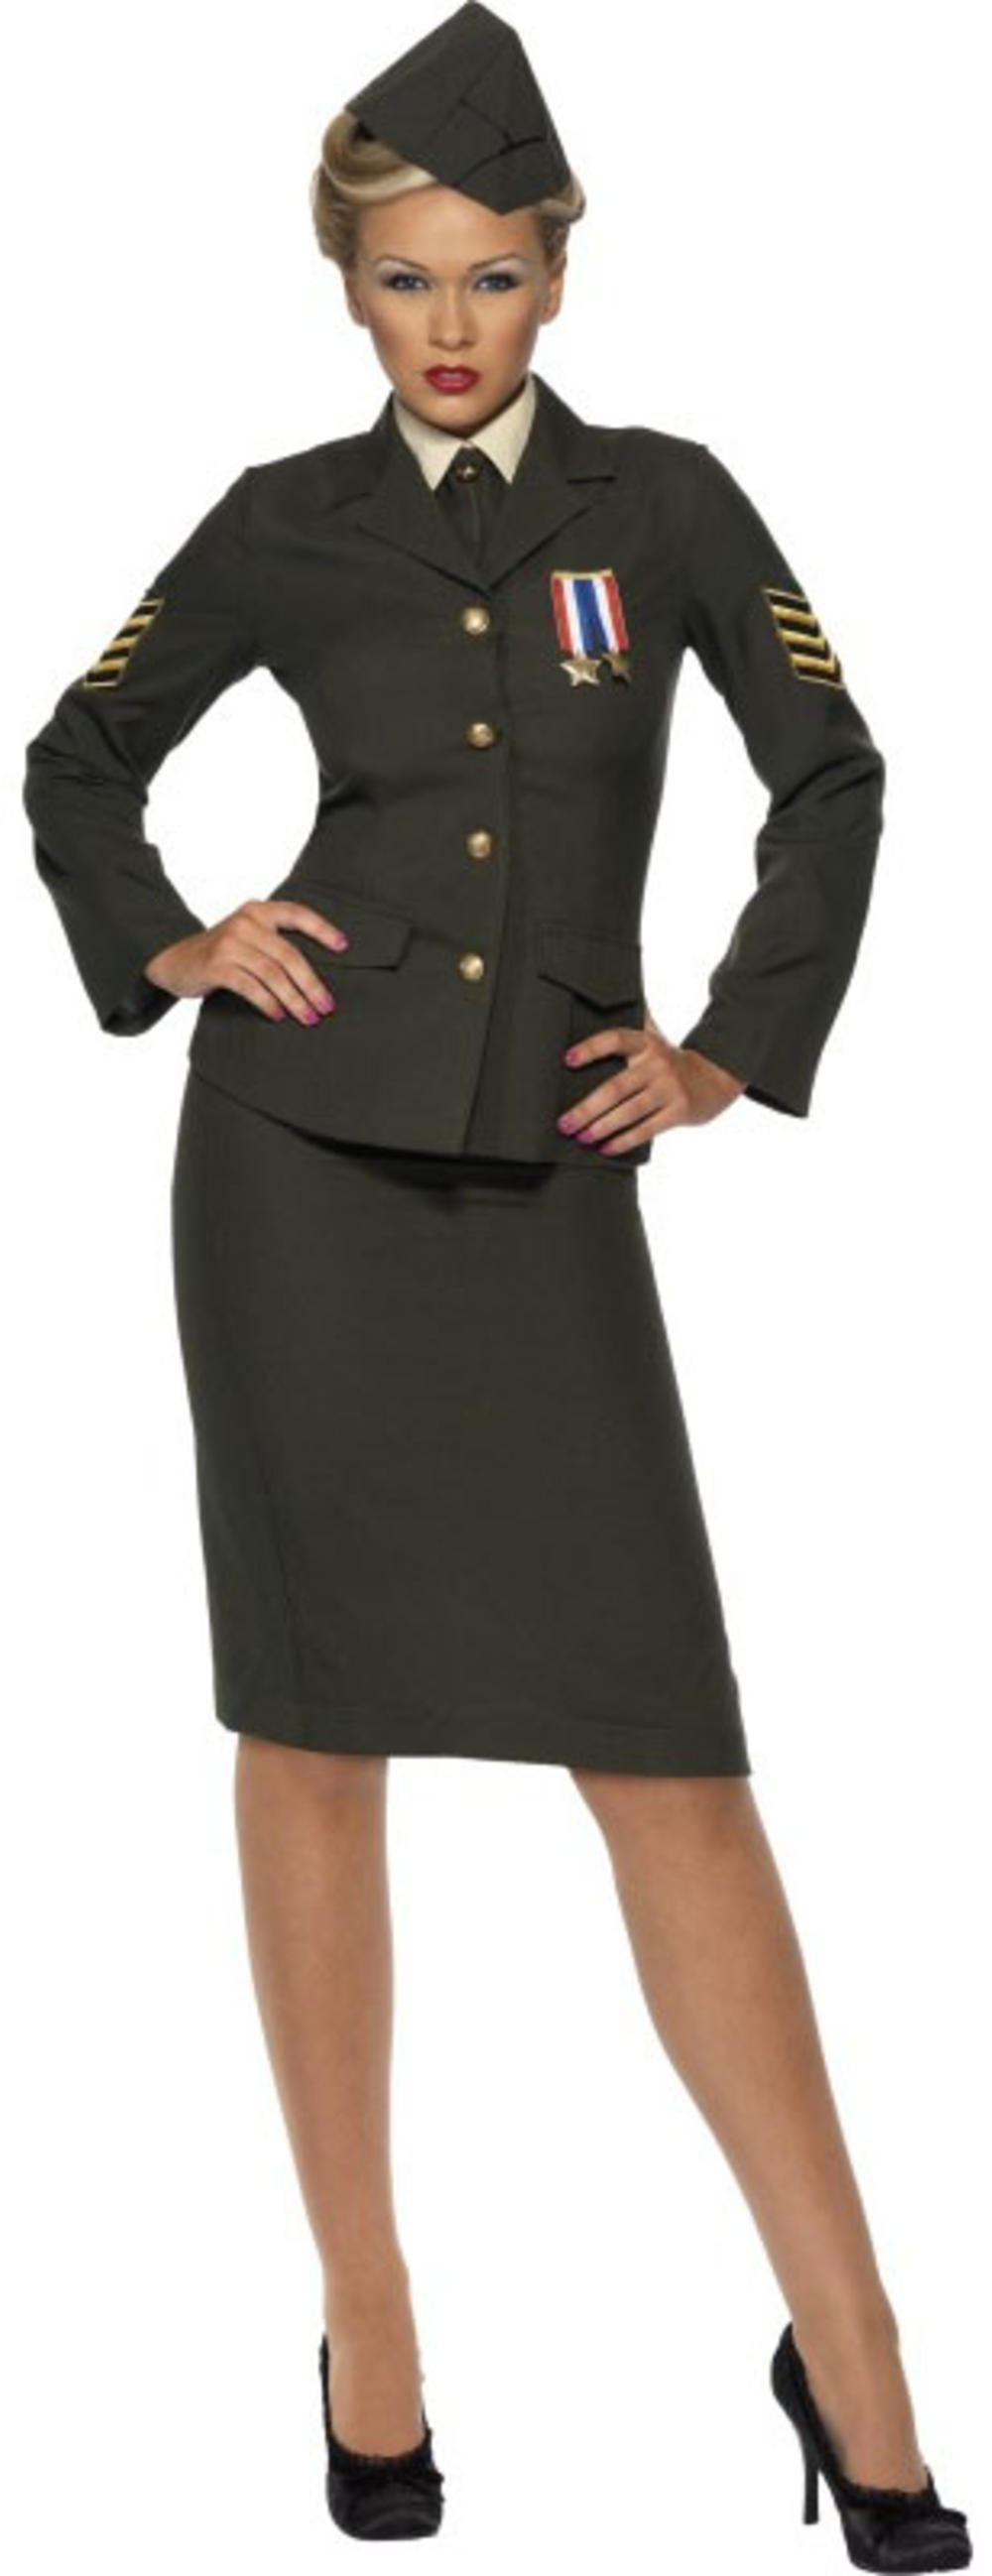 British History 1940s Army Officer Ladies Military Uniform Fancy Dress Costume